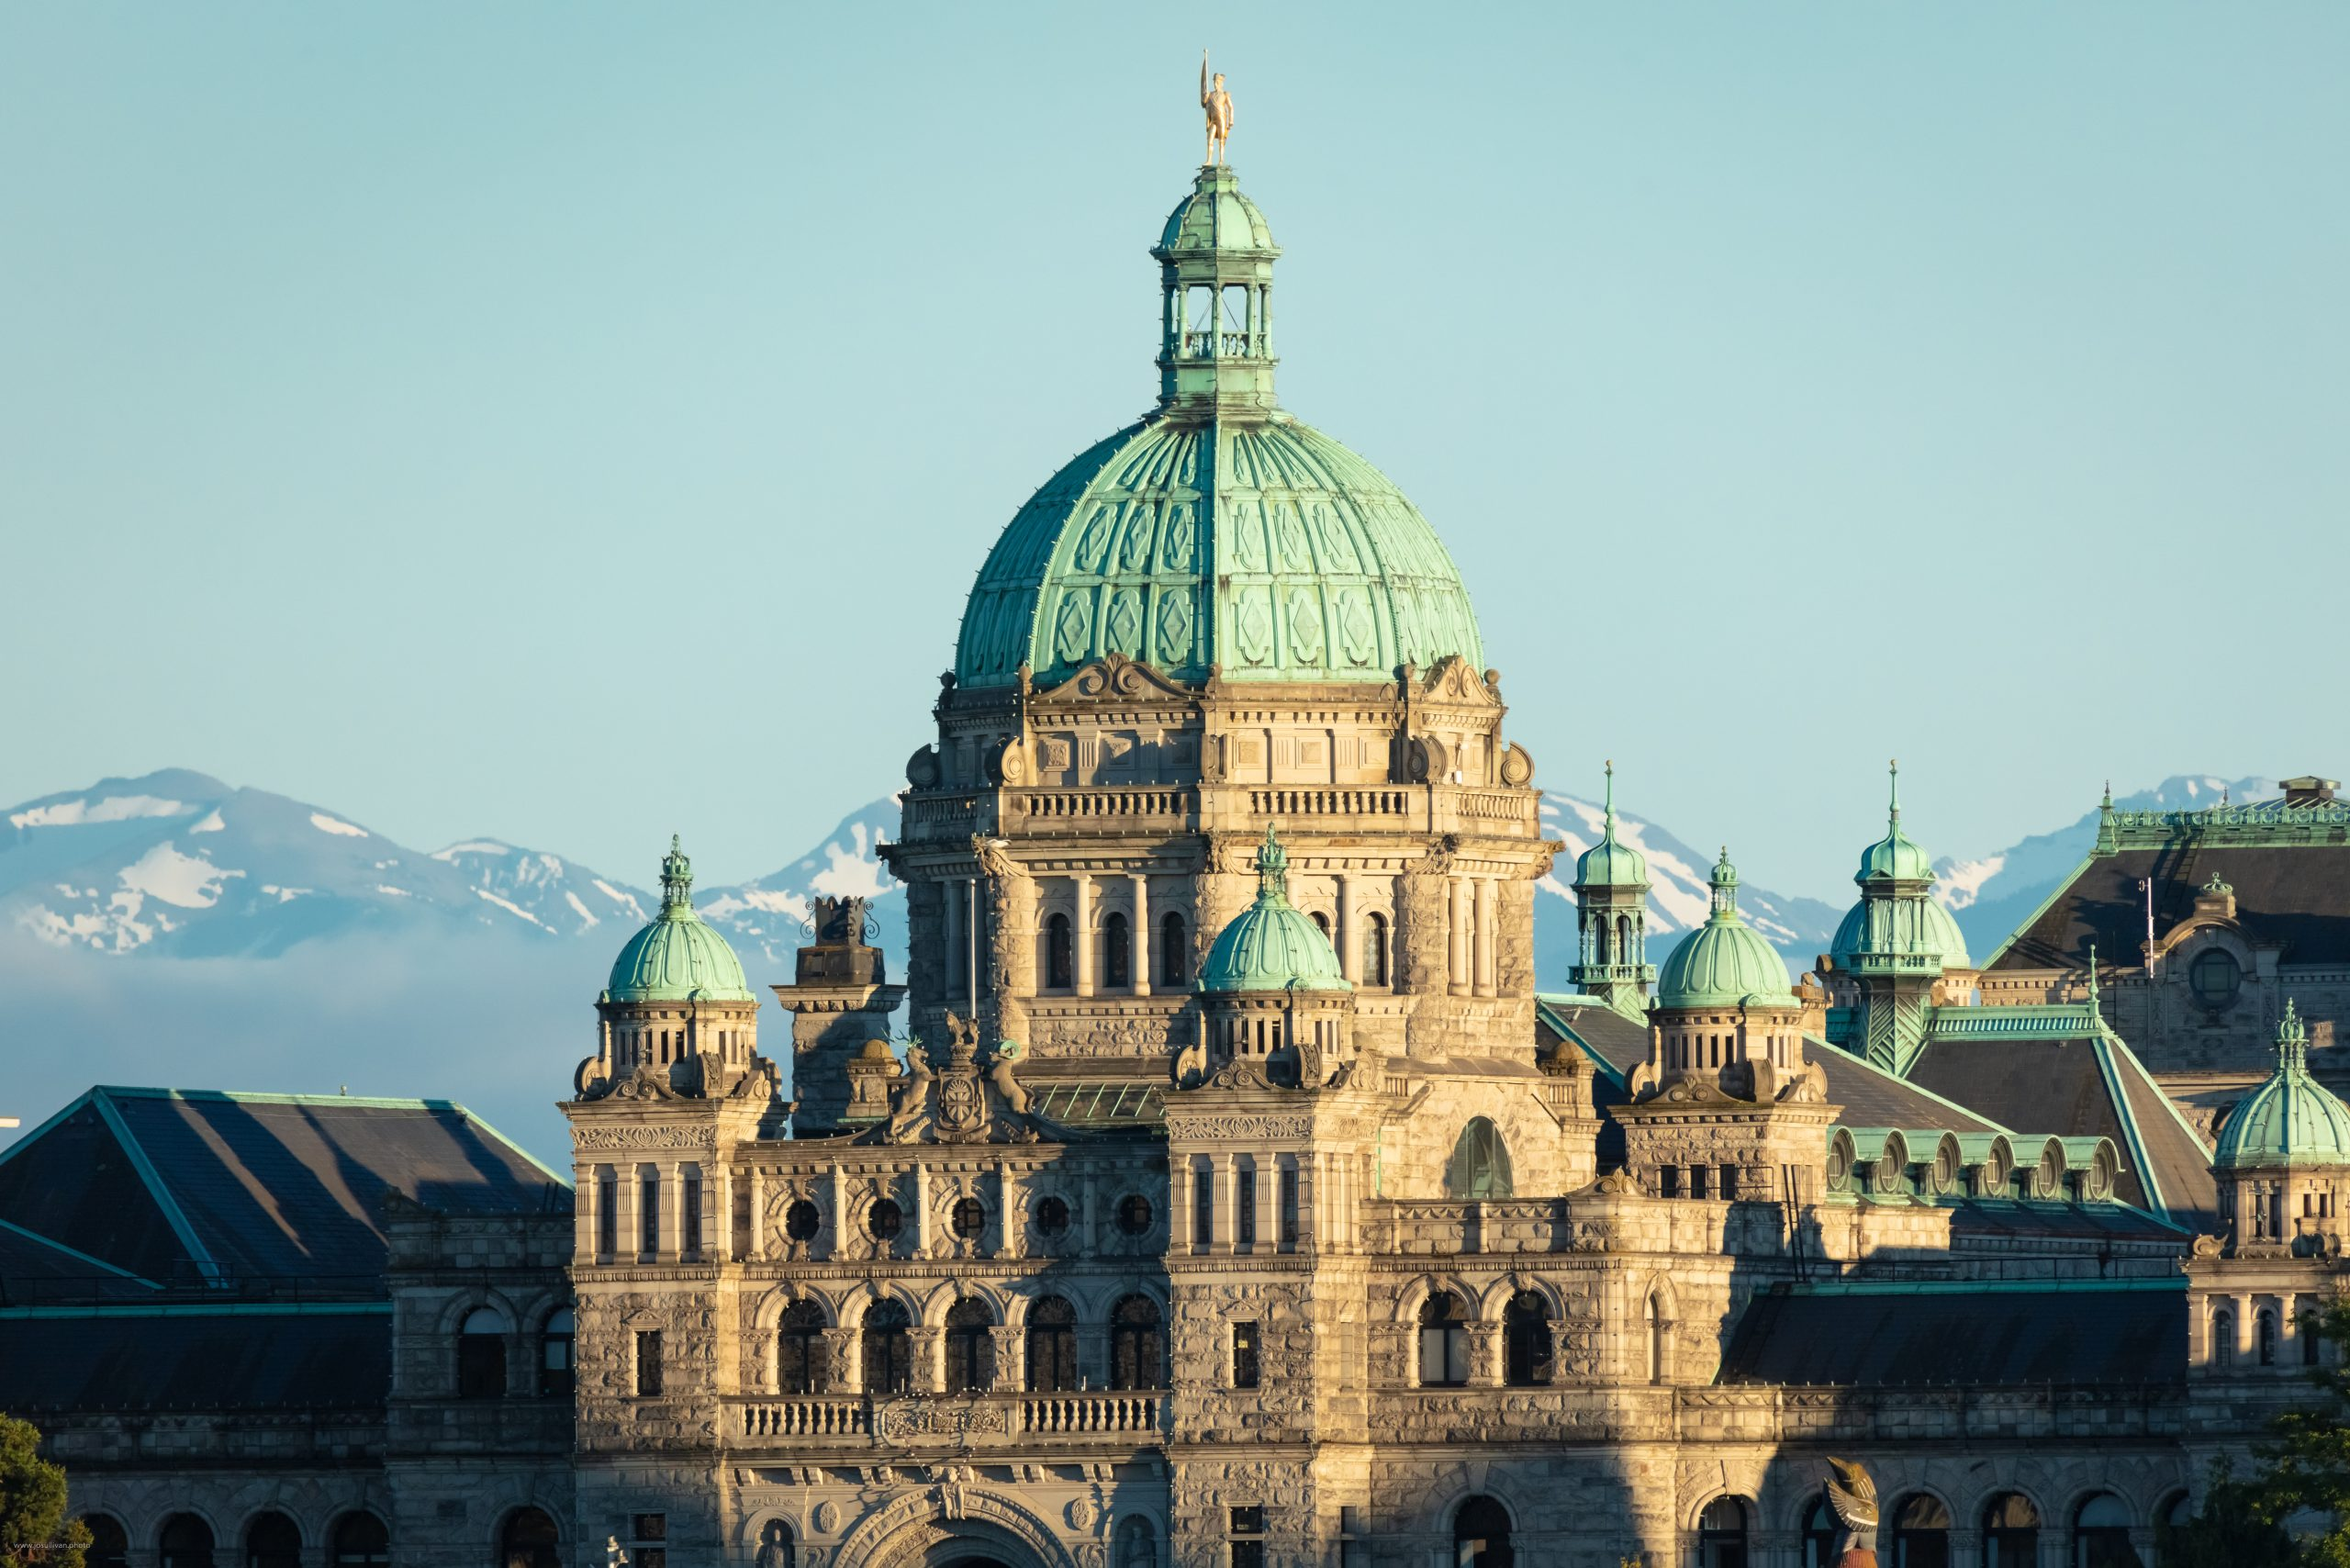 The domed top of the BC Parliament Building